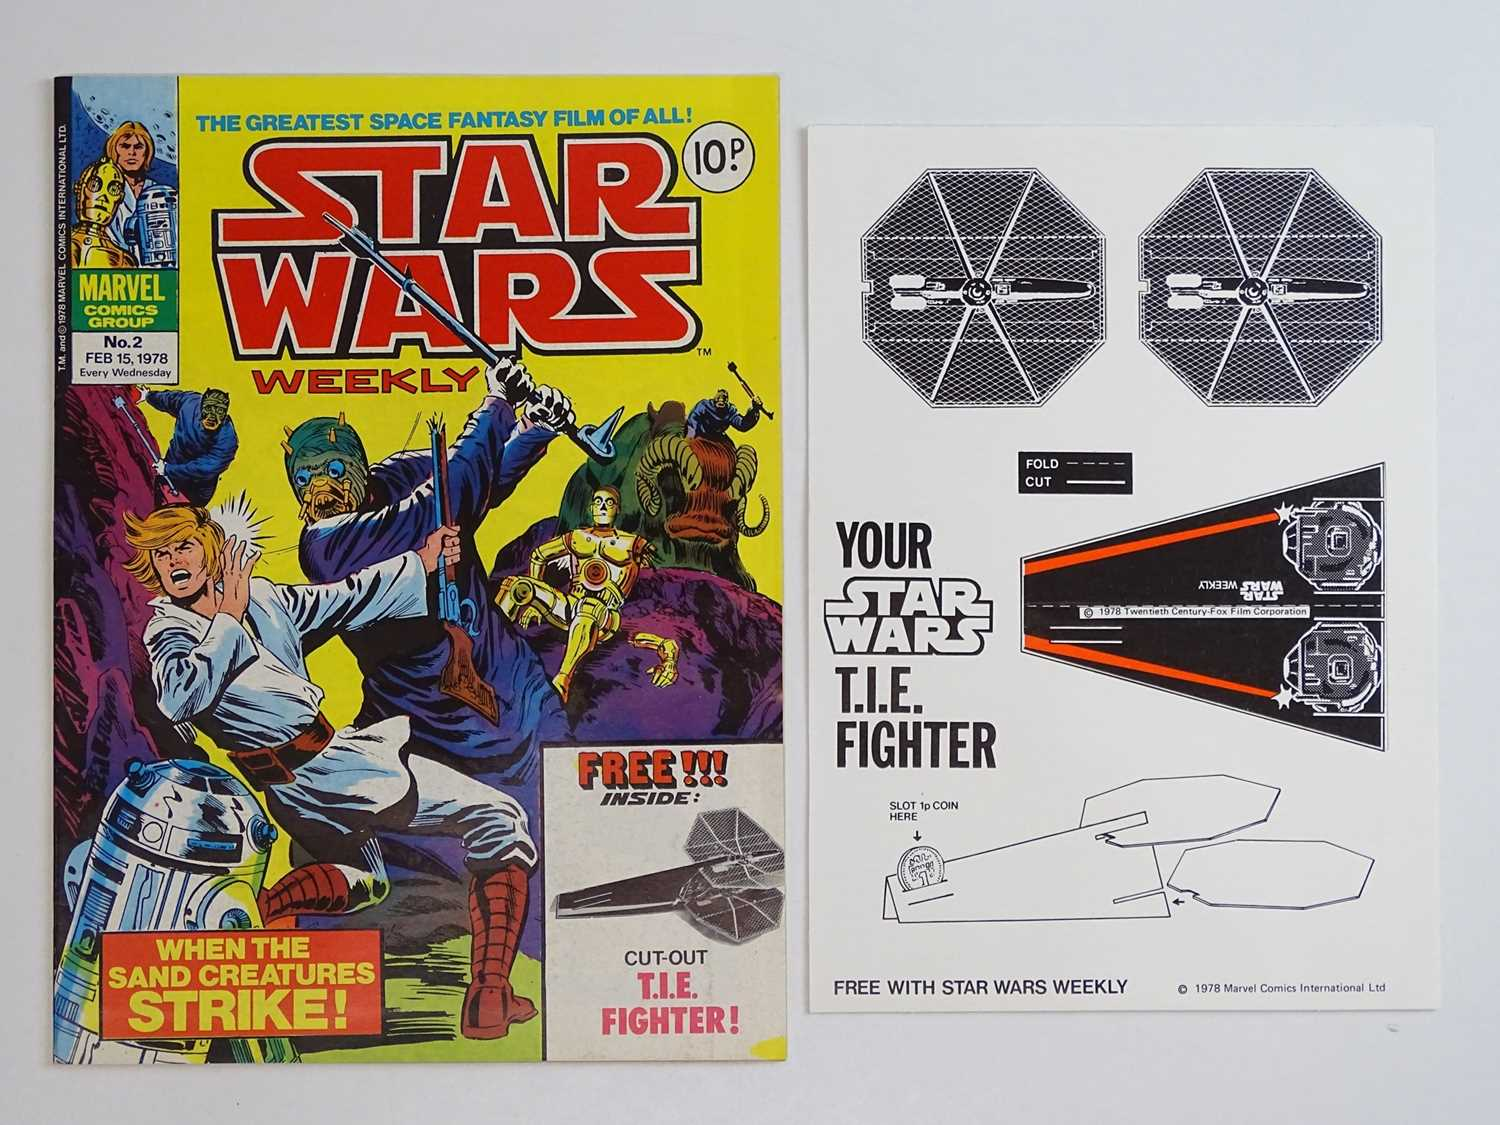 STAR WARS WEEKLY #1 to 165 - (165 in Lot) (1978/83 - BRITISH MARVEL) - Complete 165 issue run - Image 3 of 3